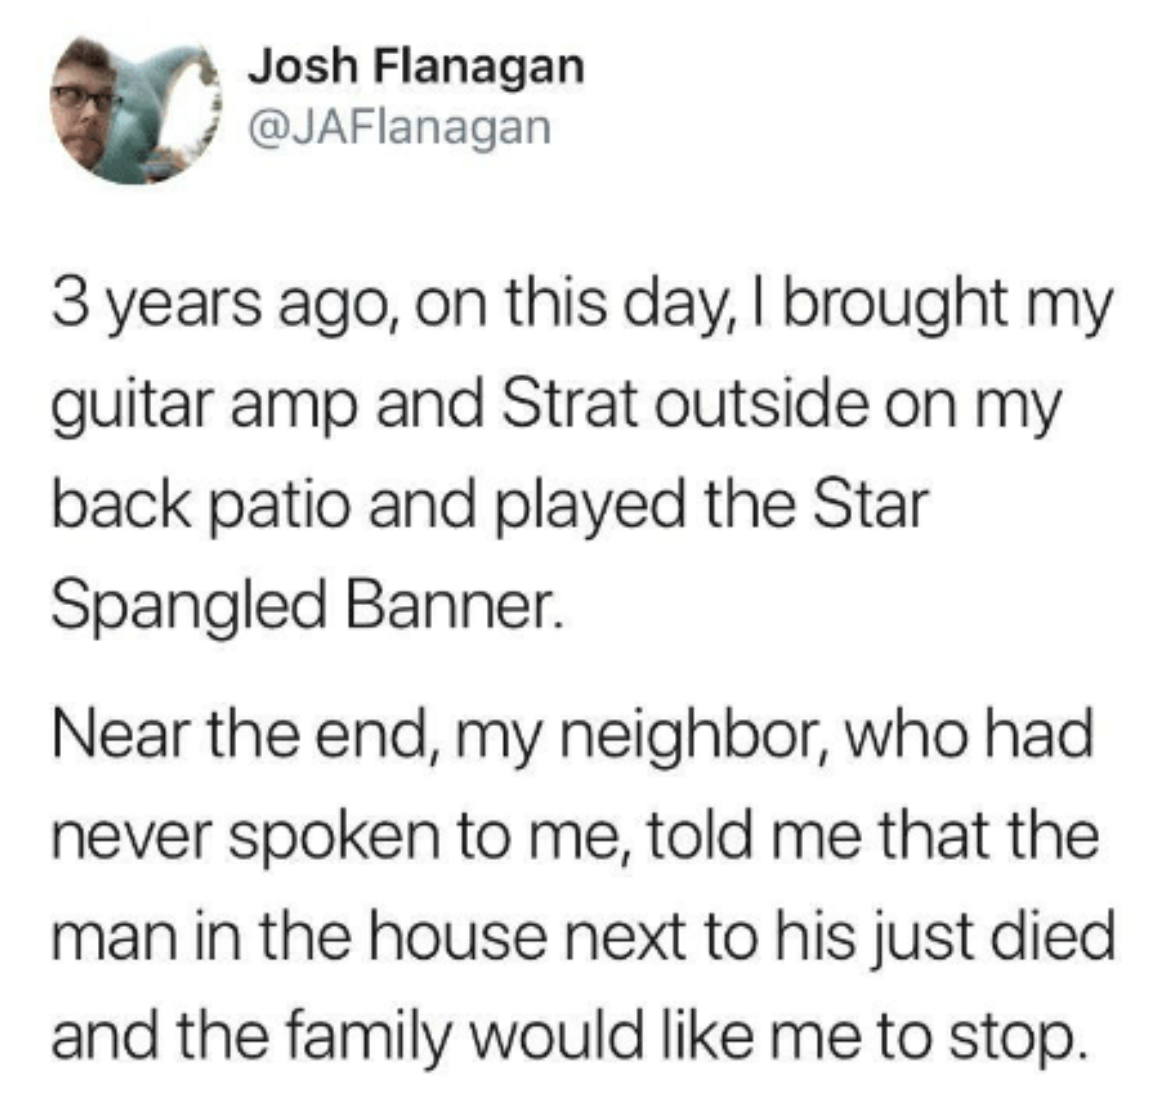 tweet about someone playing guitar loudly during a moment of grieviing for their neighbors